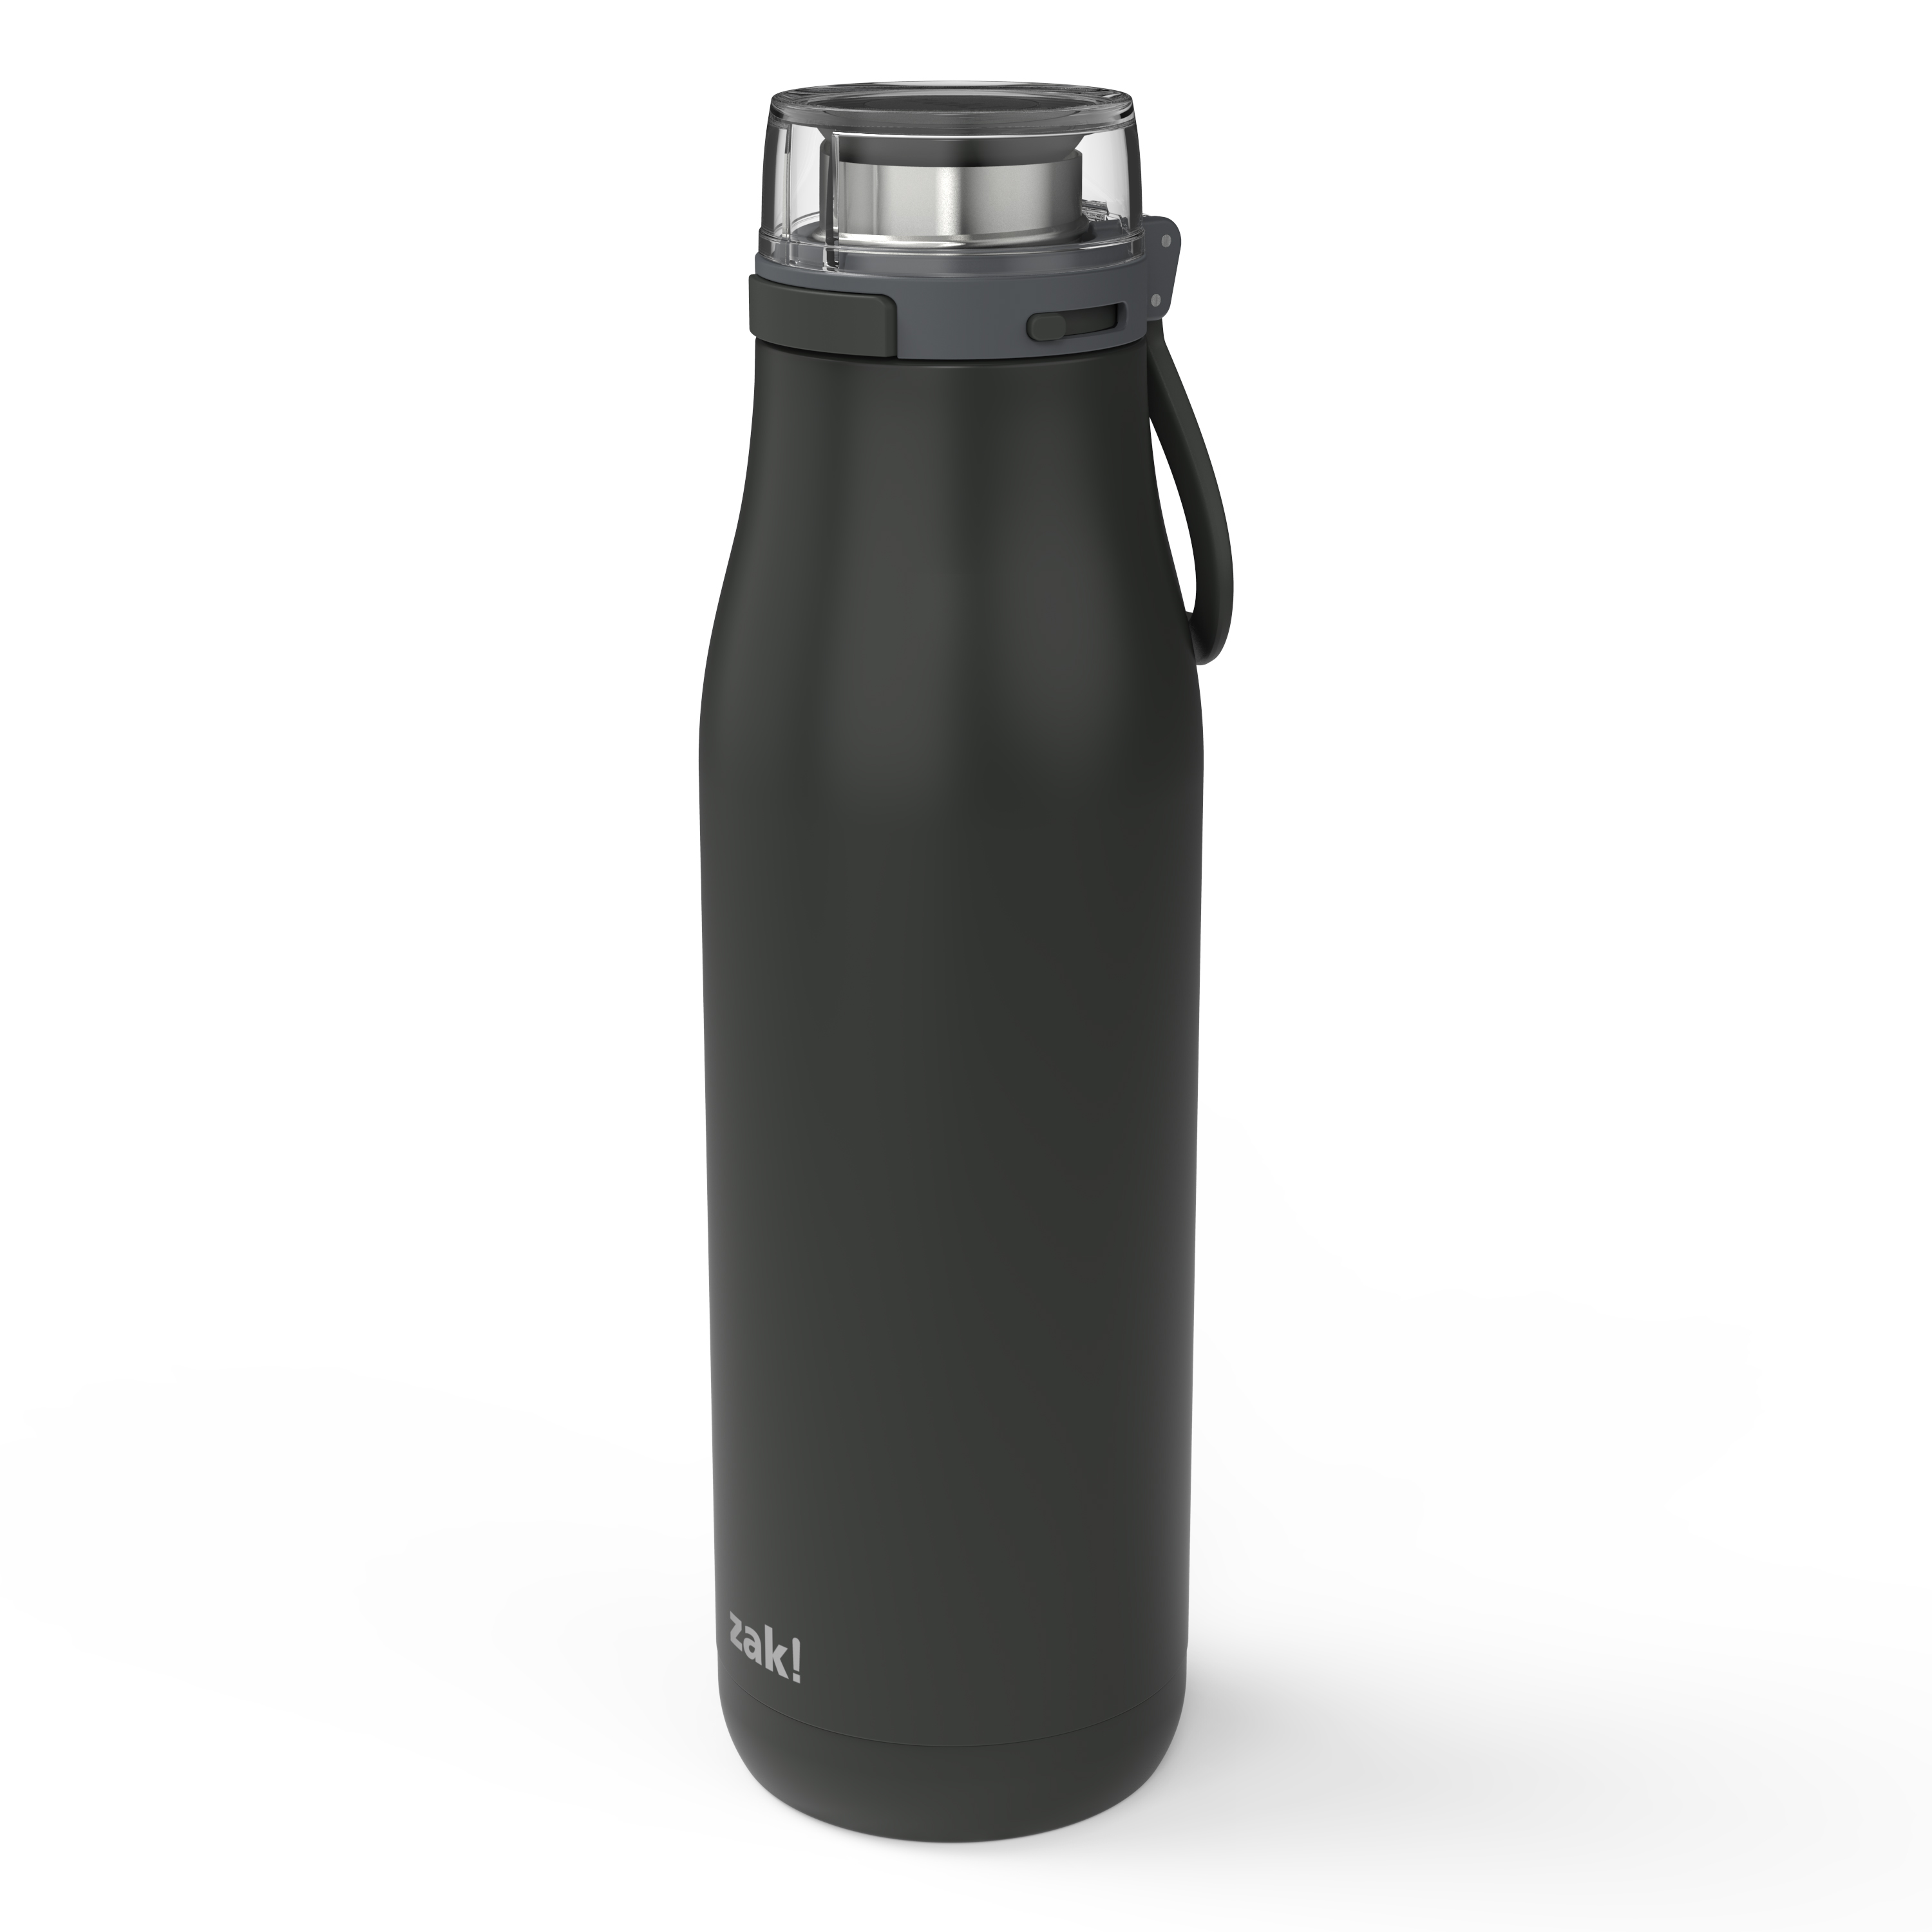 Kiona 29 ounce Vacuum Insulated Stainless Steel Tumbler, Charcoal slideshow image 3